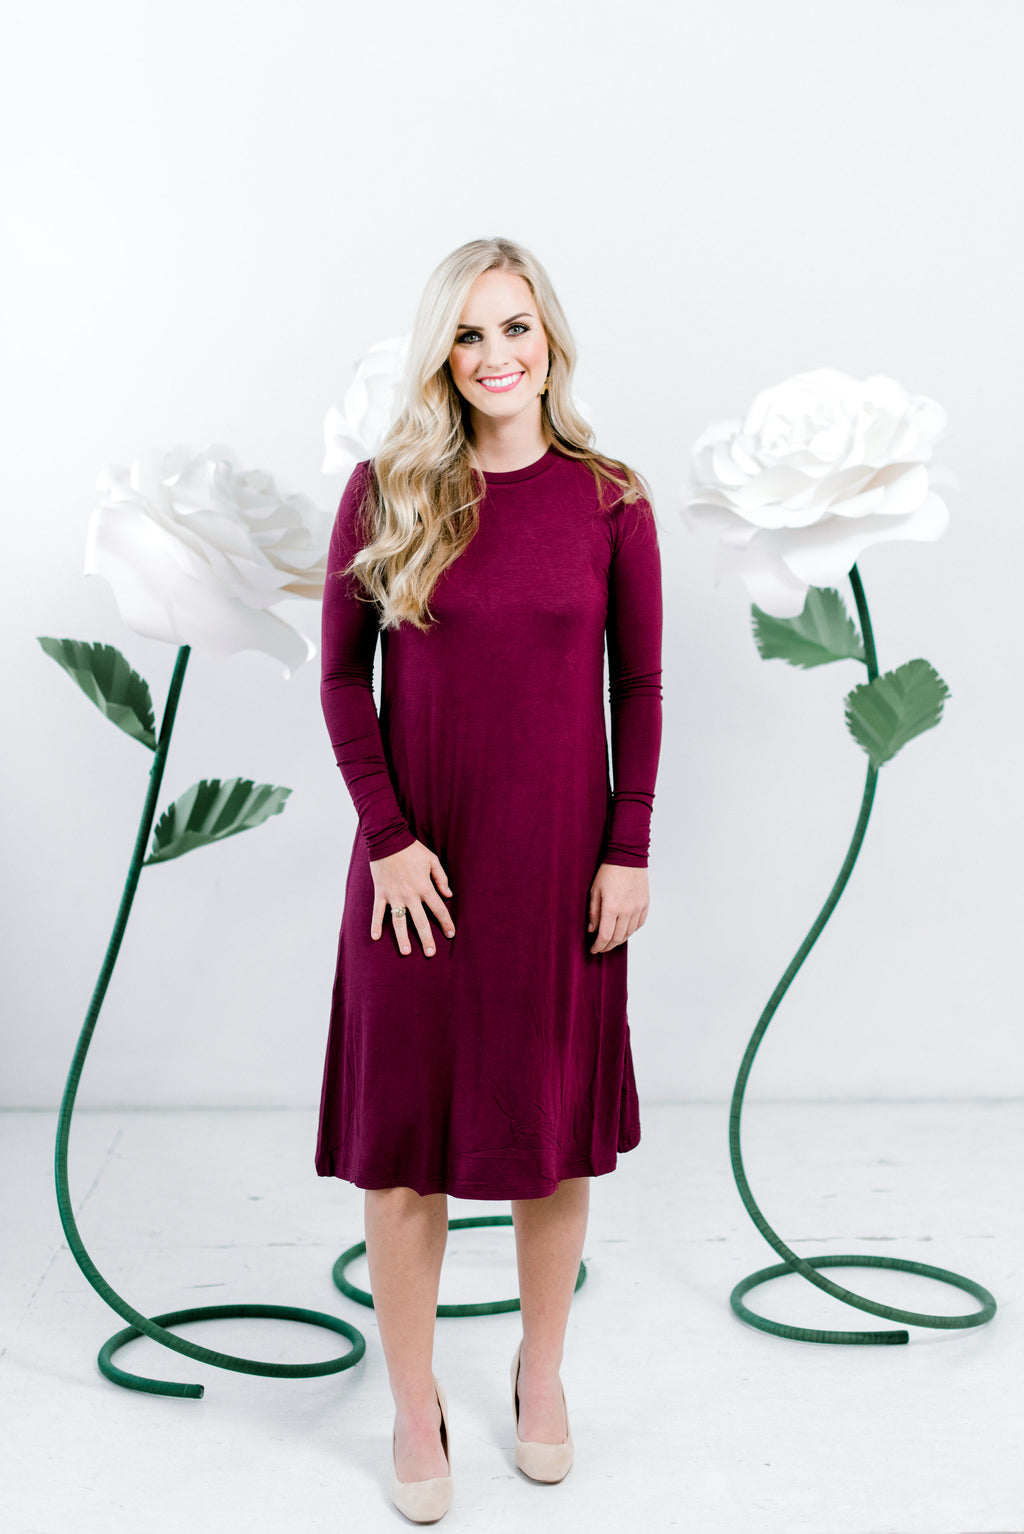 Burgundy Sundrop - 2 Lengths- Nursing Friendly Midi Length Dress